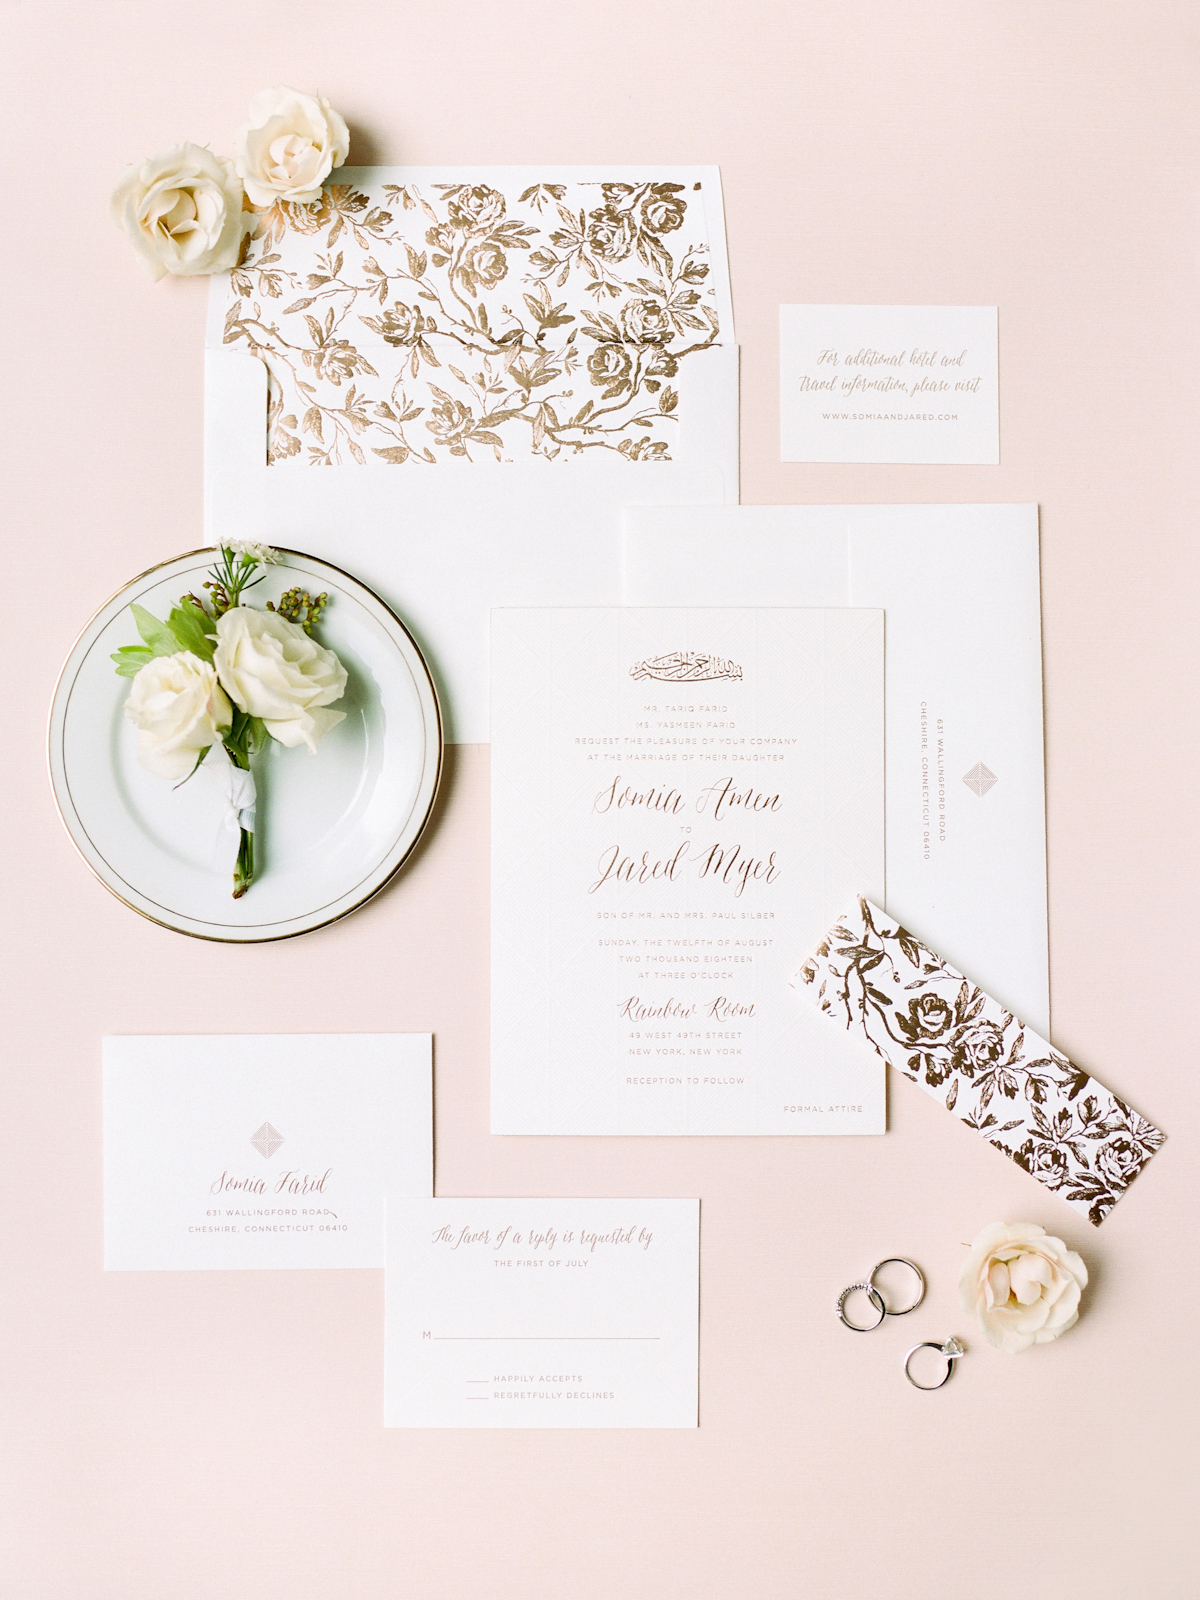 Invitation suite for Rainbow Room wedding